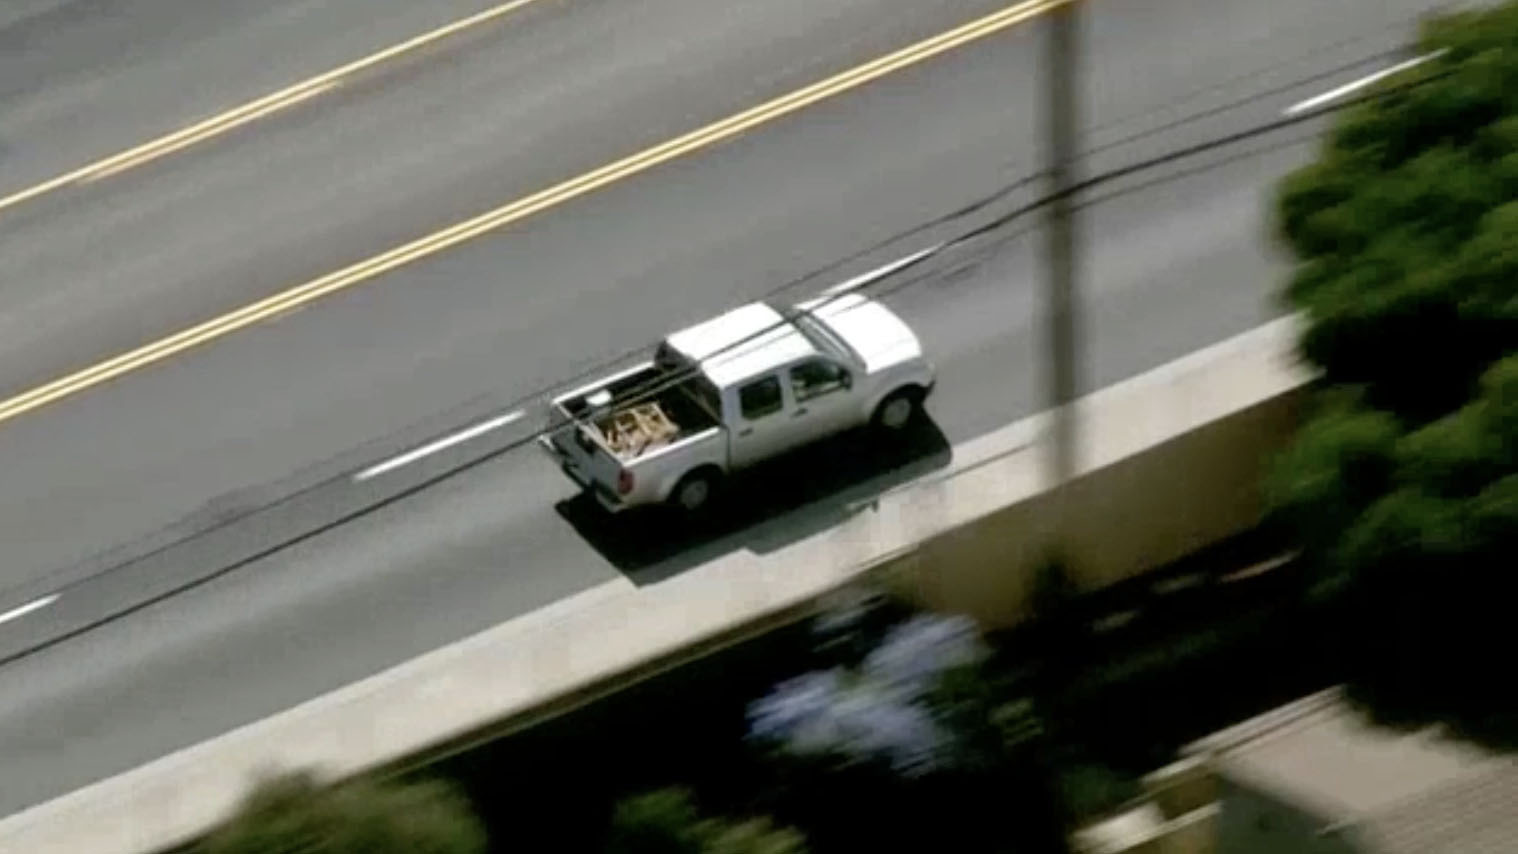 After Standoff Outside Shopping Center, Pickup Driver Takes Off in High-Speed Chase